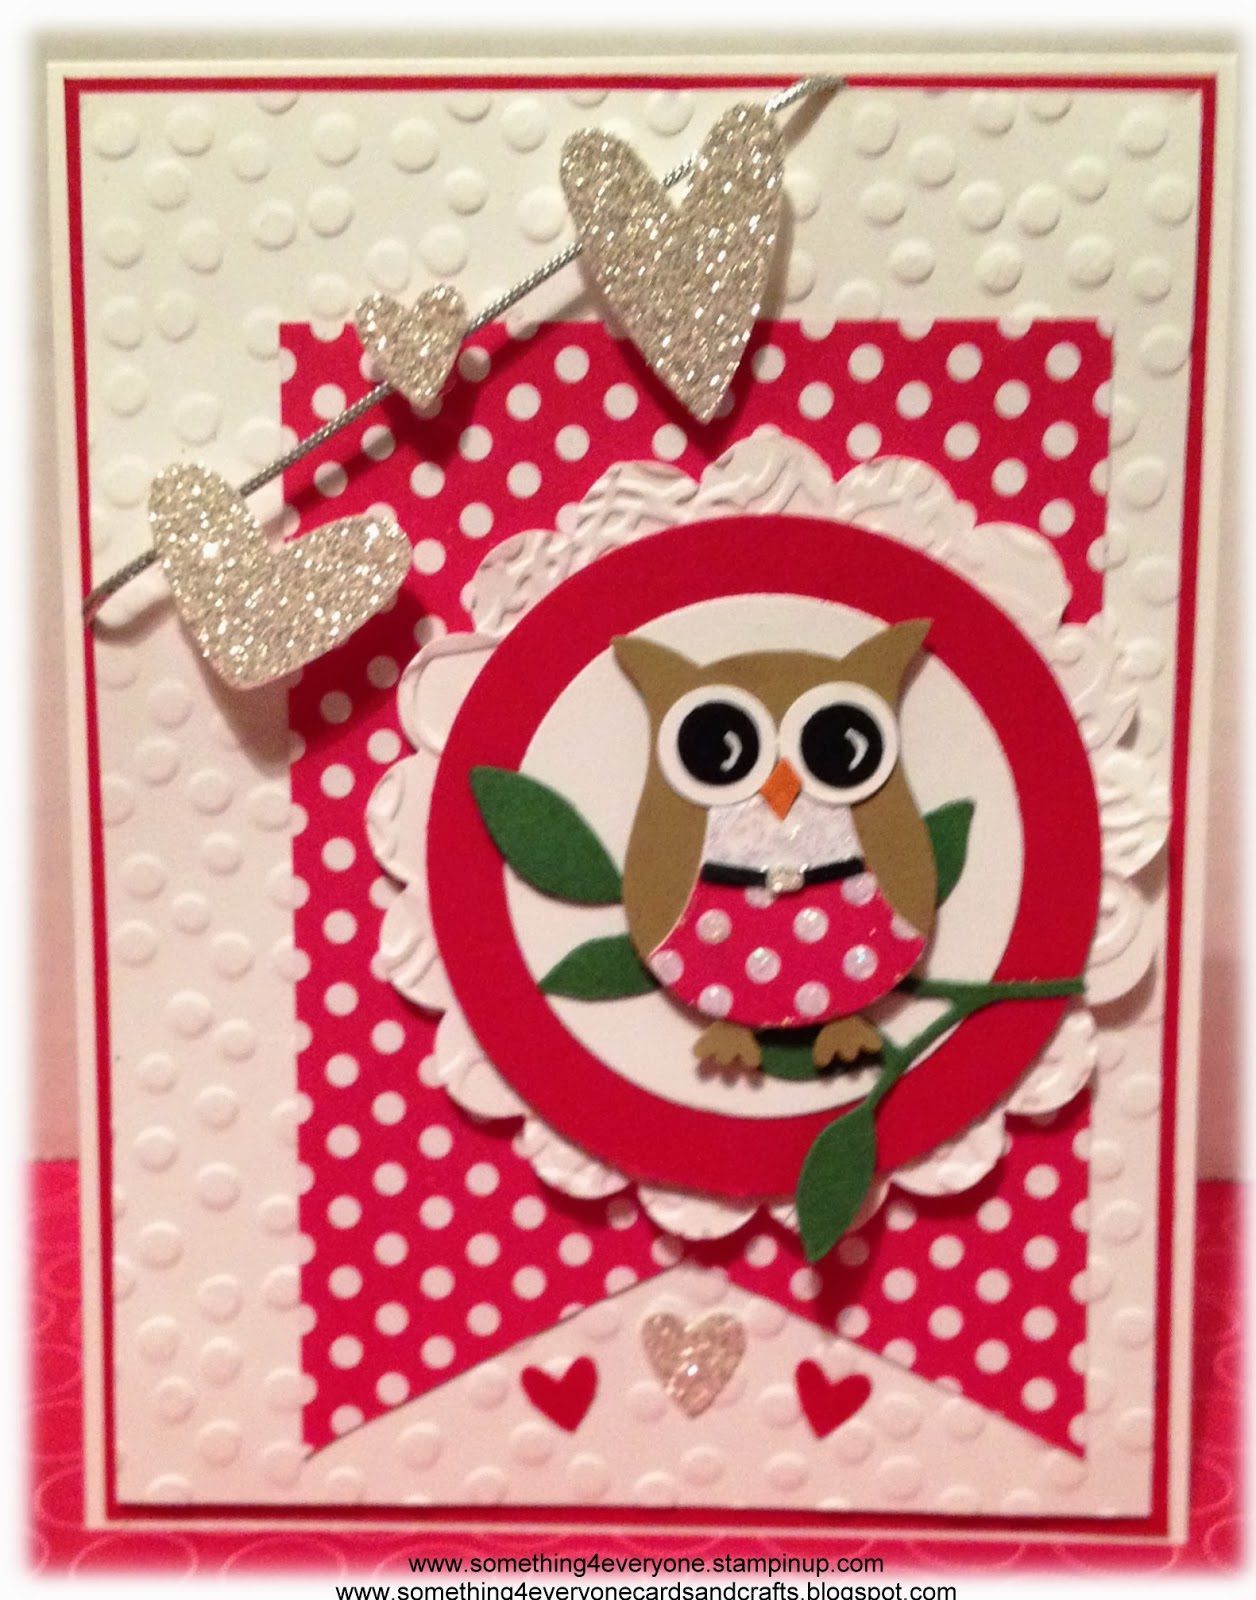 http://www.stampinup.net/esuite/home/something4everyone/project/viewProject.soa?id=405484